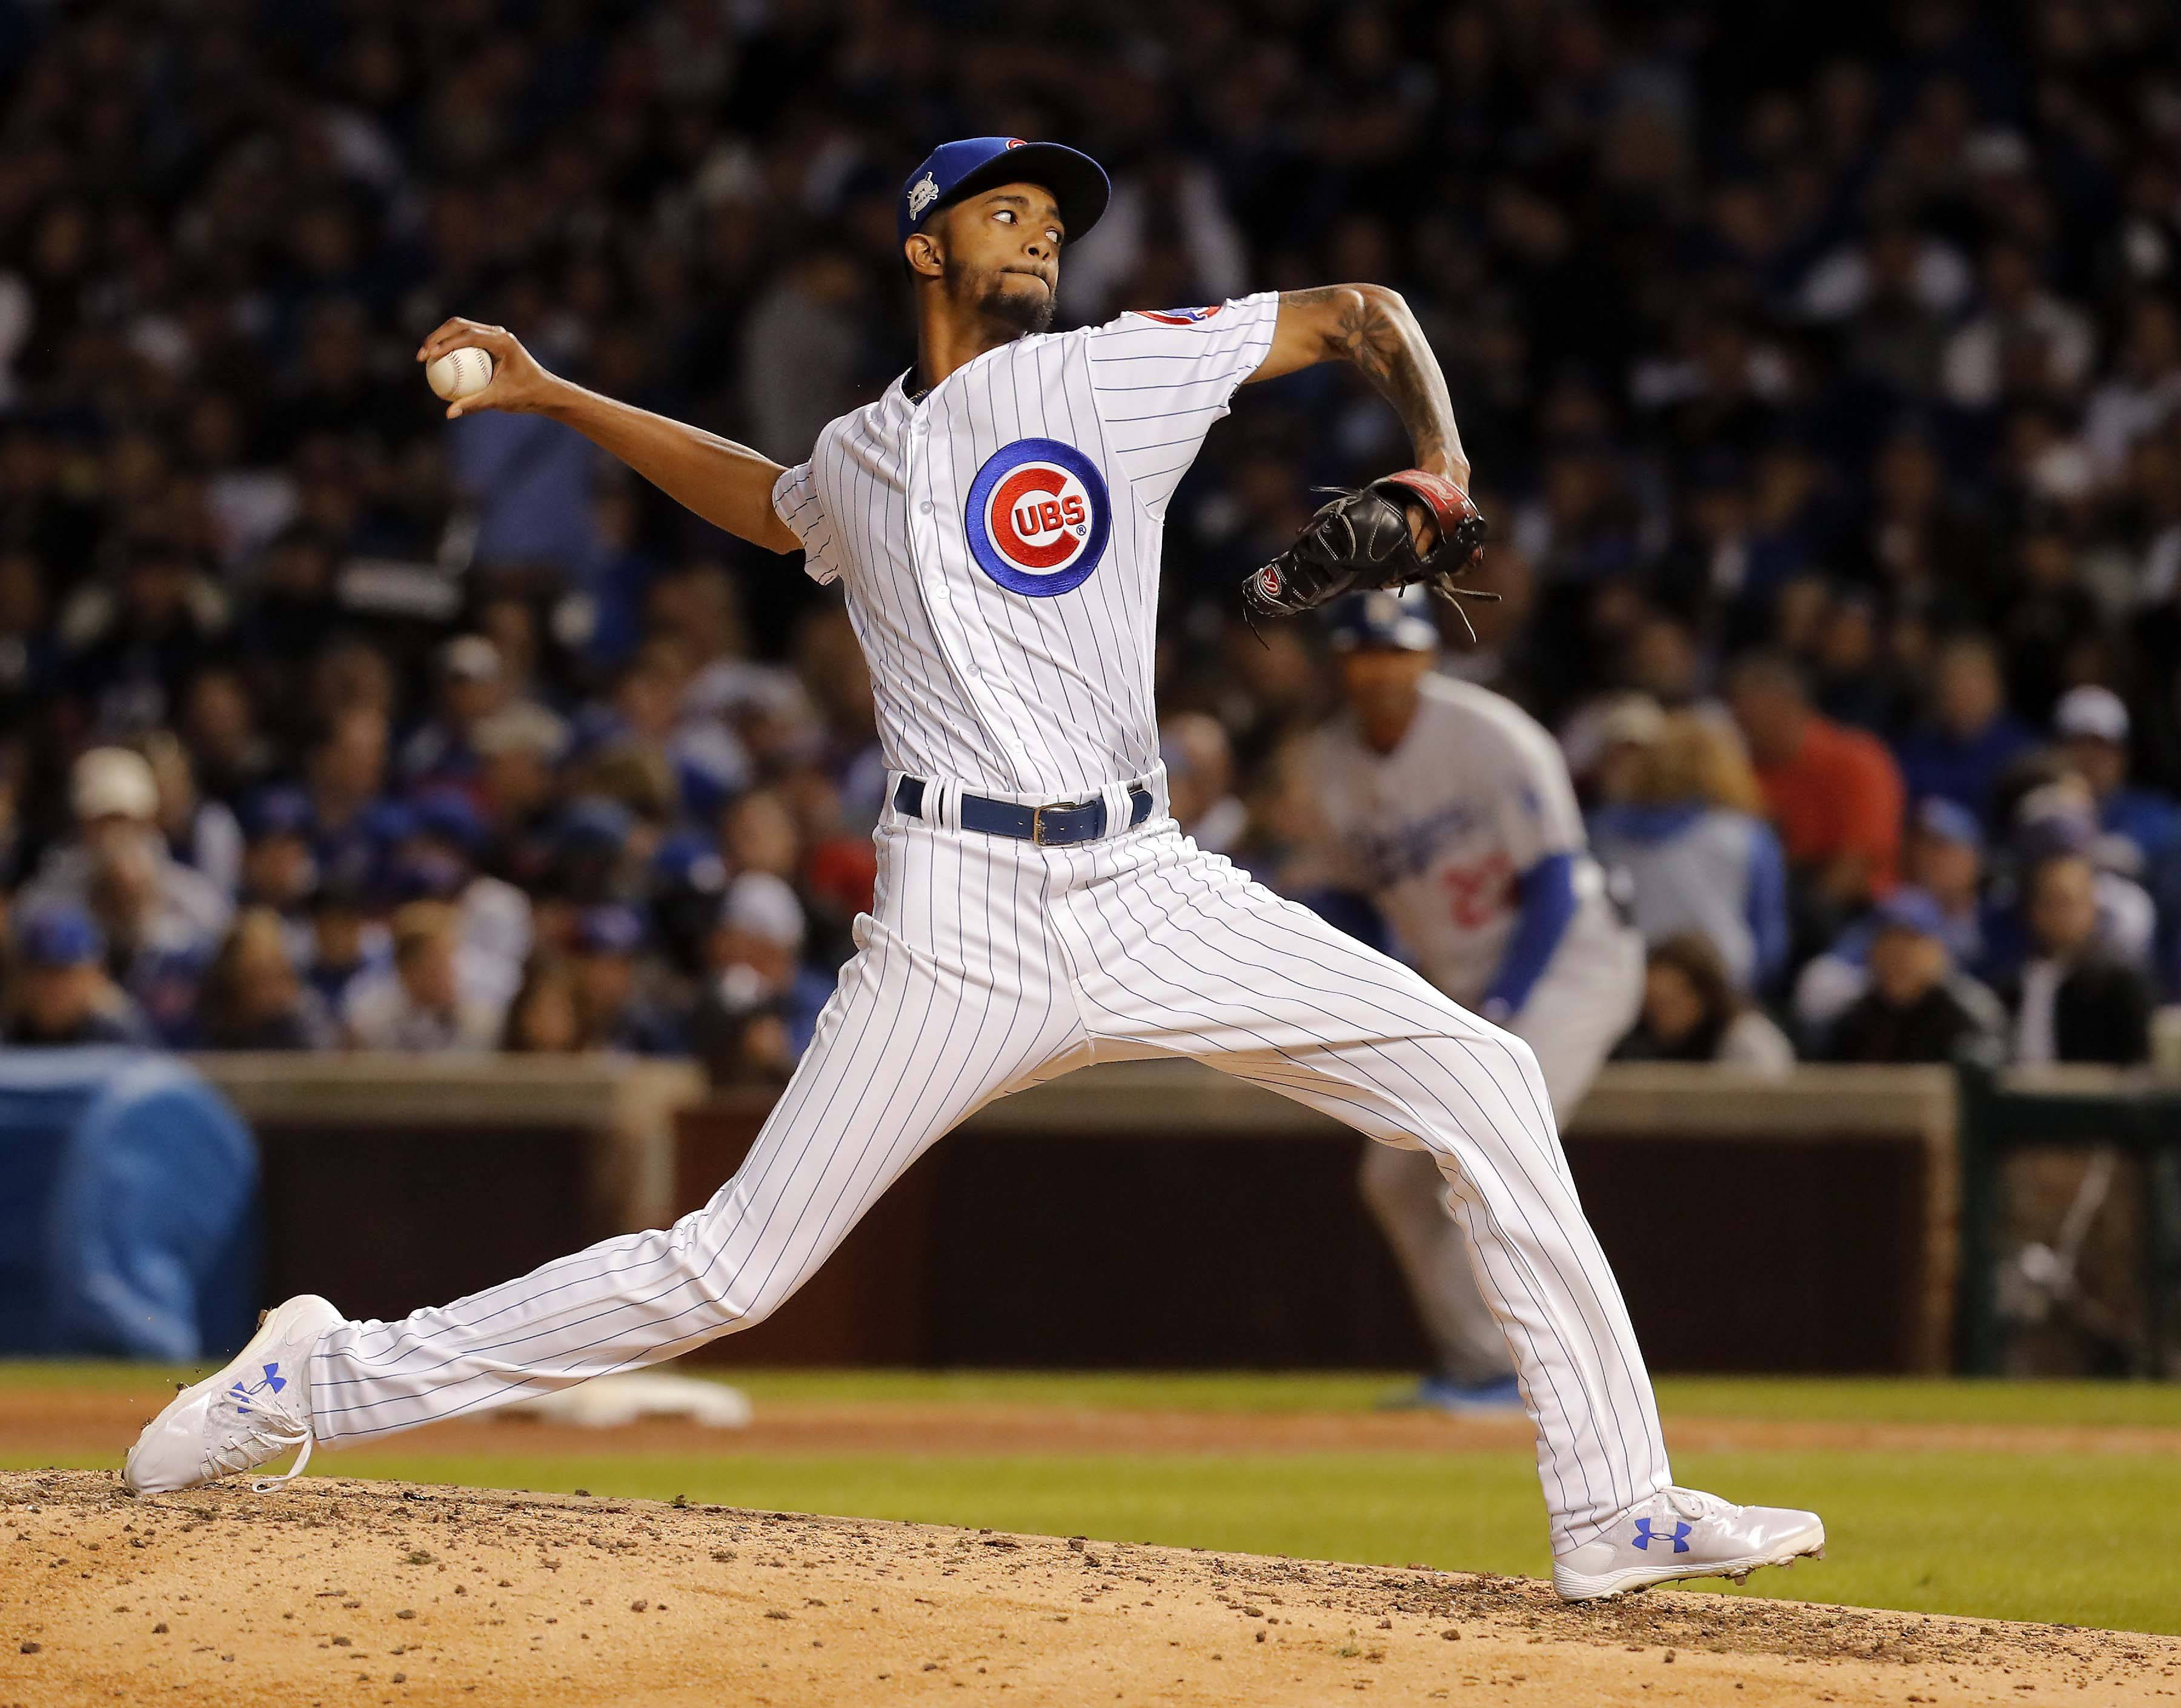 Maddon: 'I thought C.J. was the right man' against Darvish